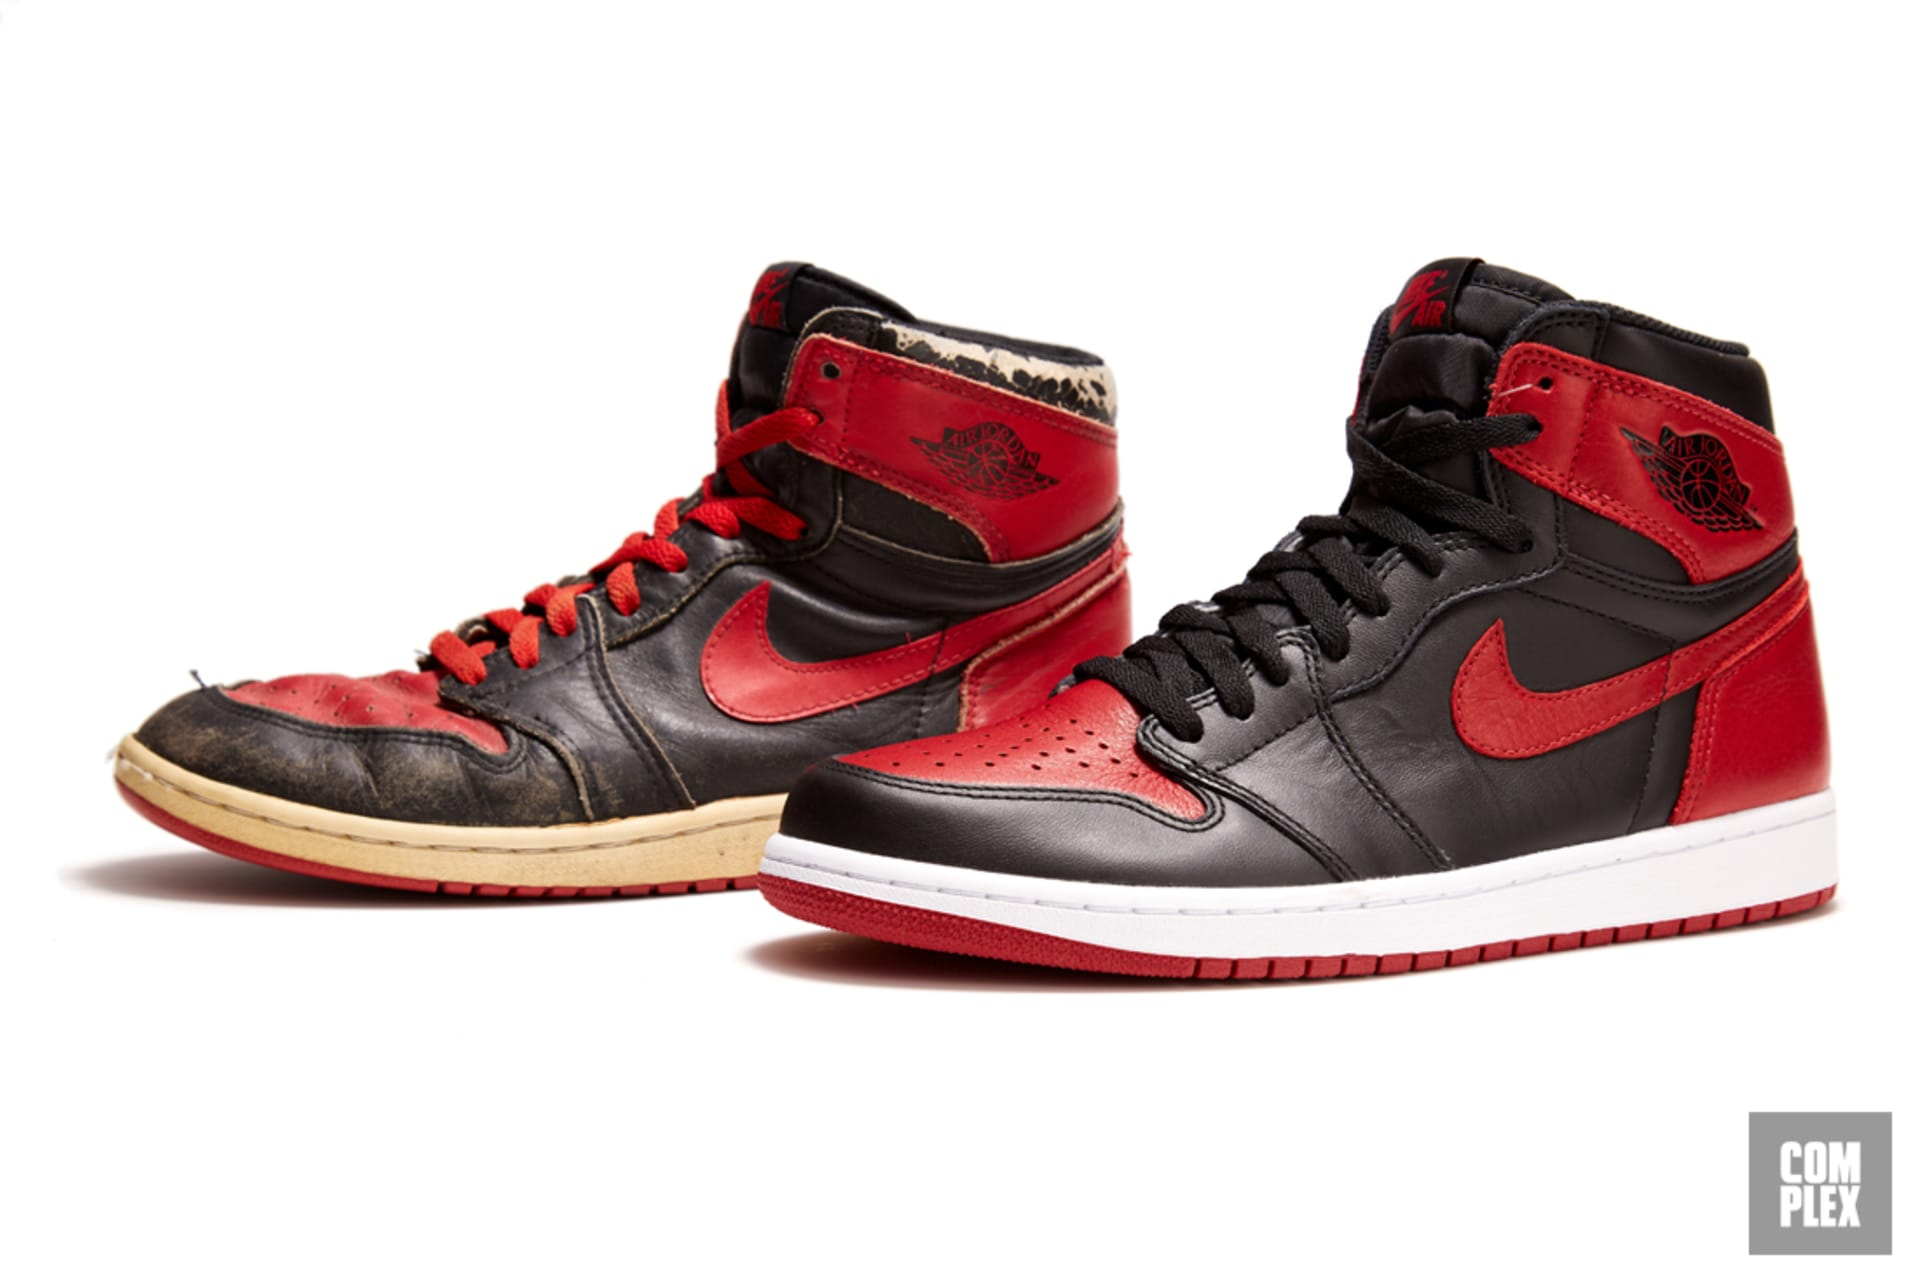 69ade15dc59f The Evolution of the Black and Red Air Jordan 1